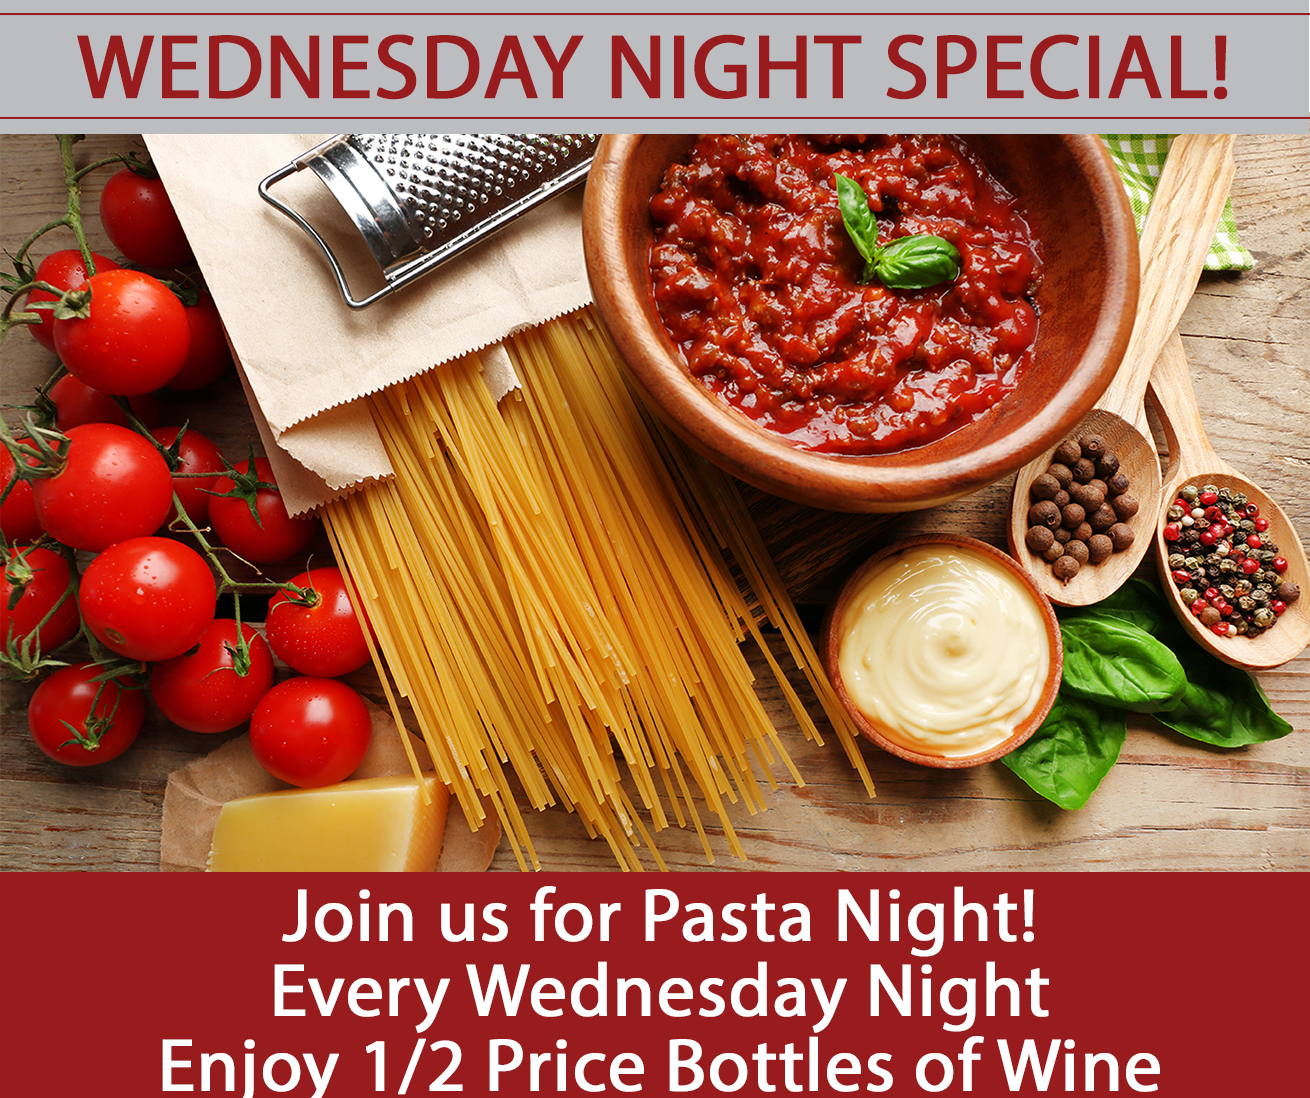 wednesday night special! Join us for pasta night every wednesday night enjoy 1/2 price bottles of wine